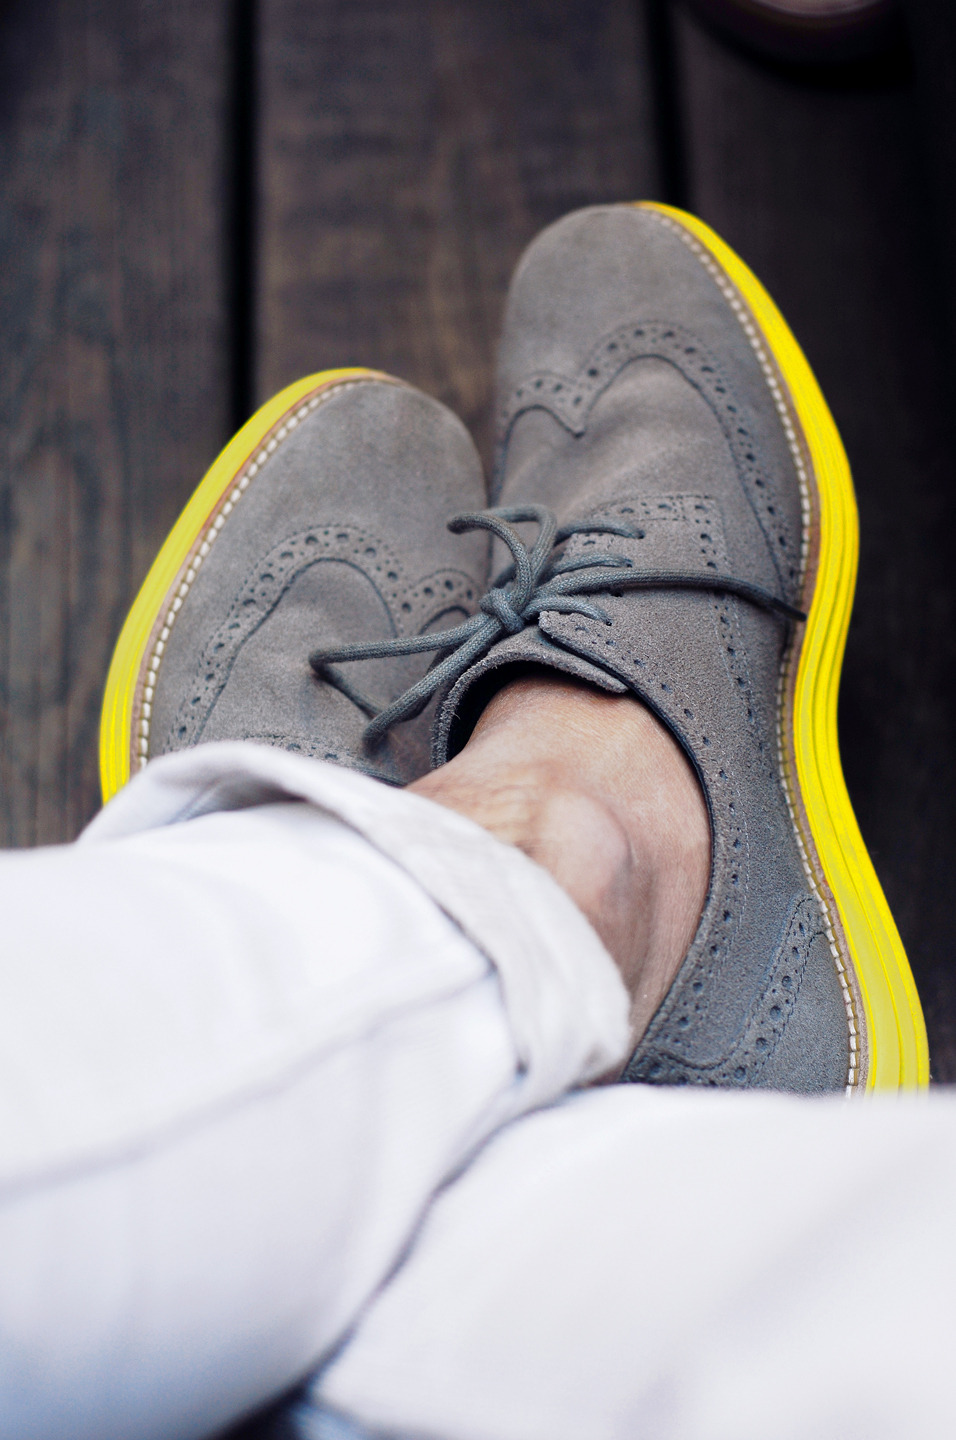 Chillin' at Saturdays with my LunarGrand Wingtips.